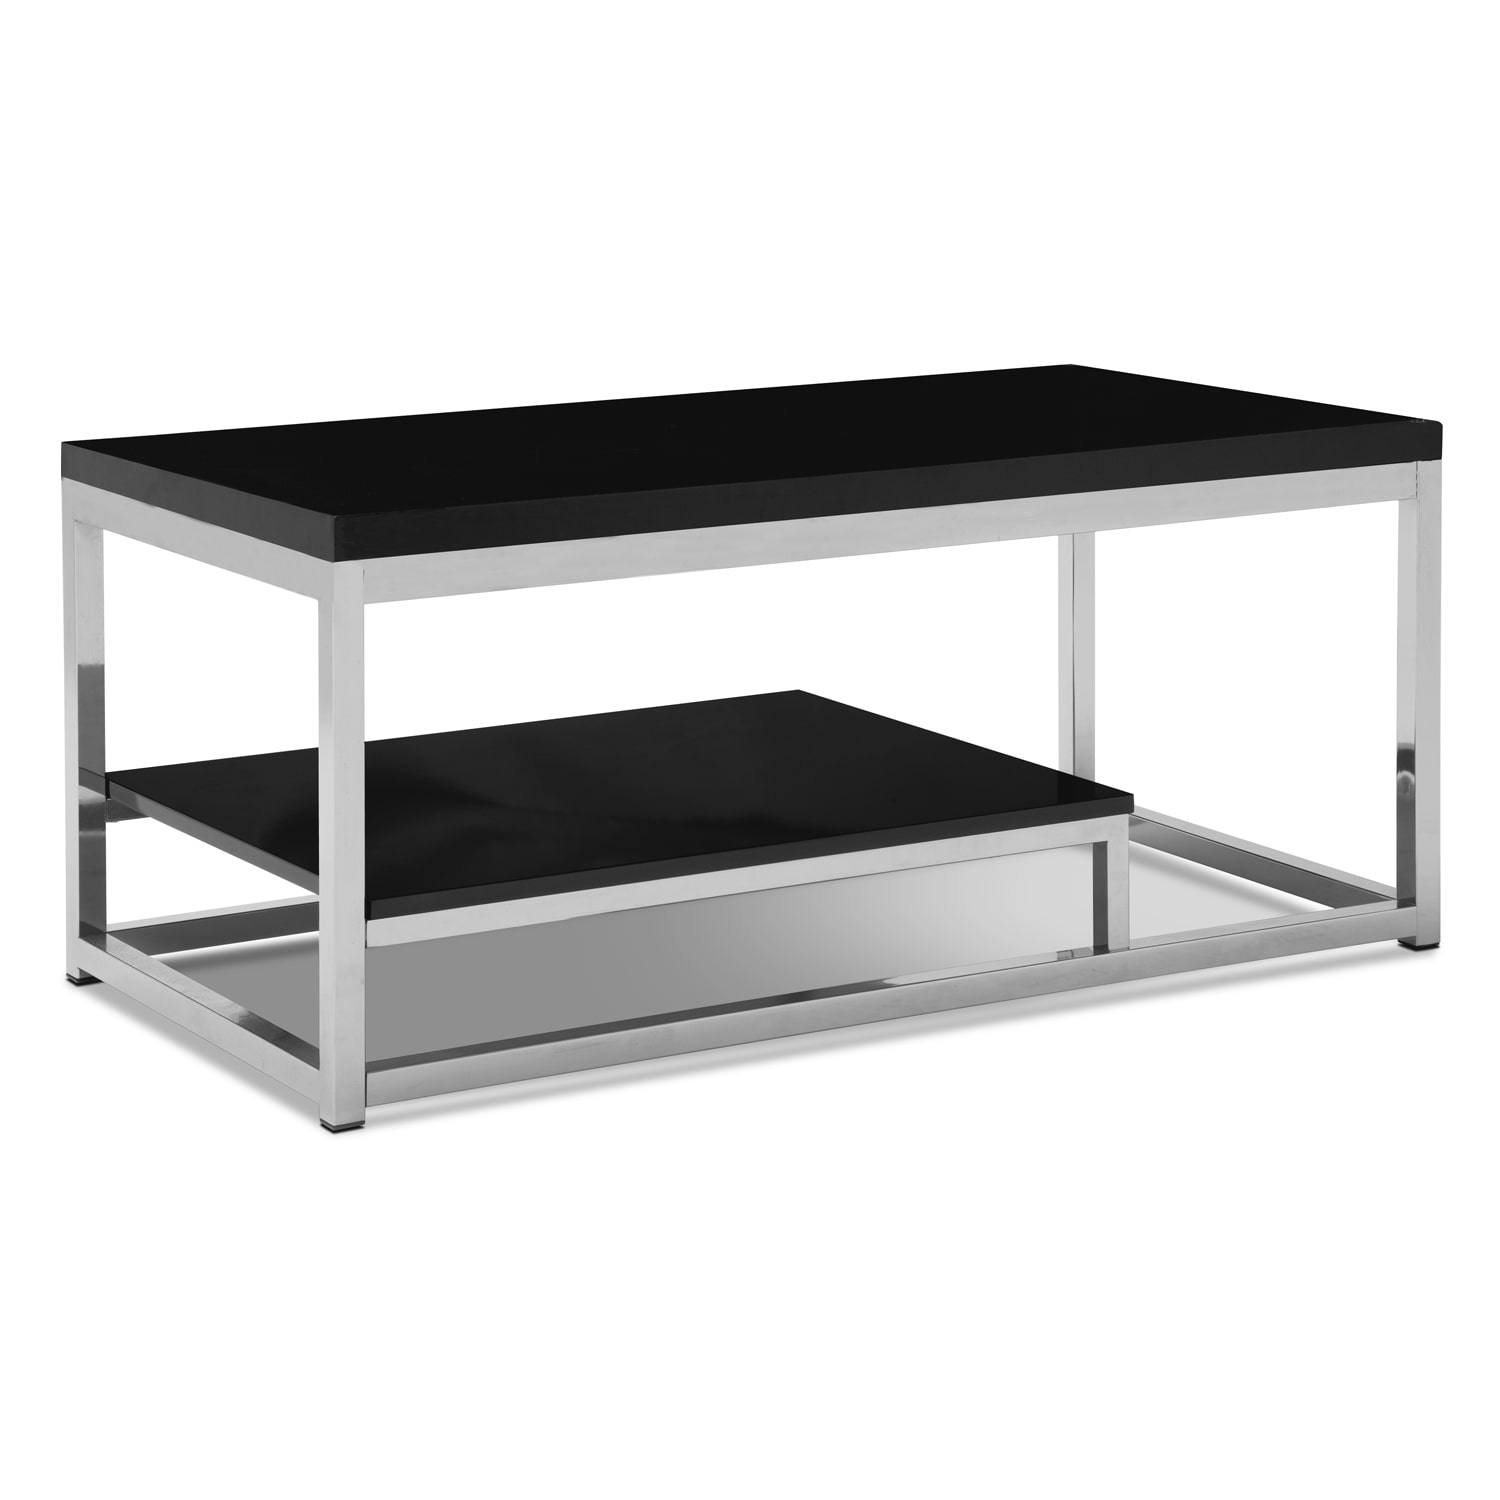 Cielo Cocktail Table - Chrome and Black